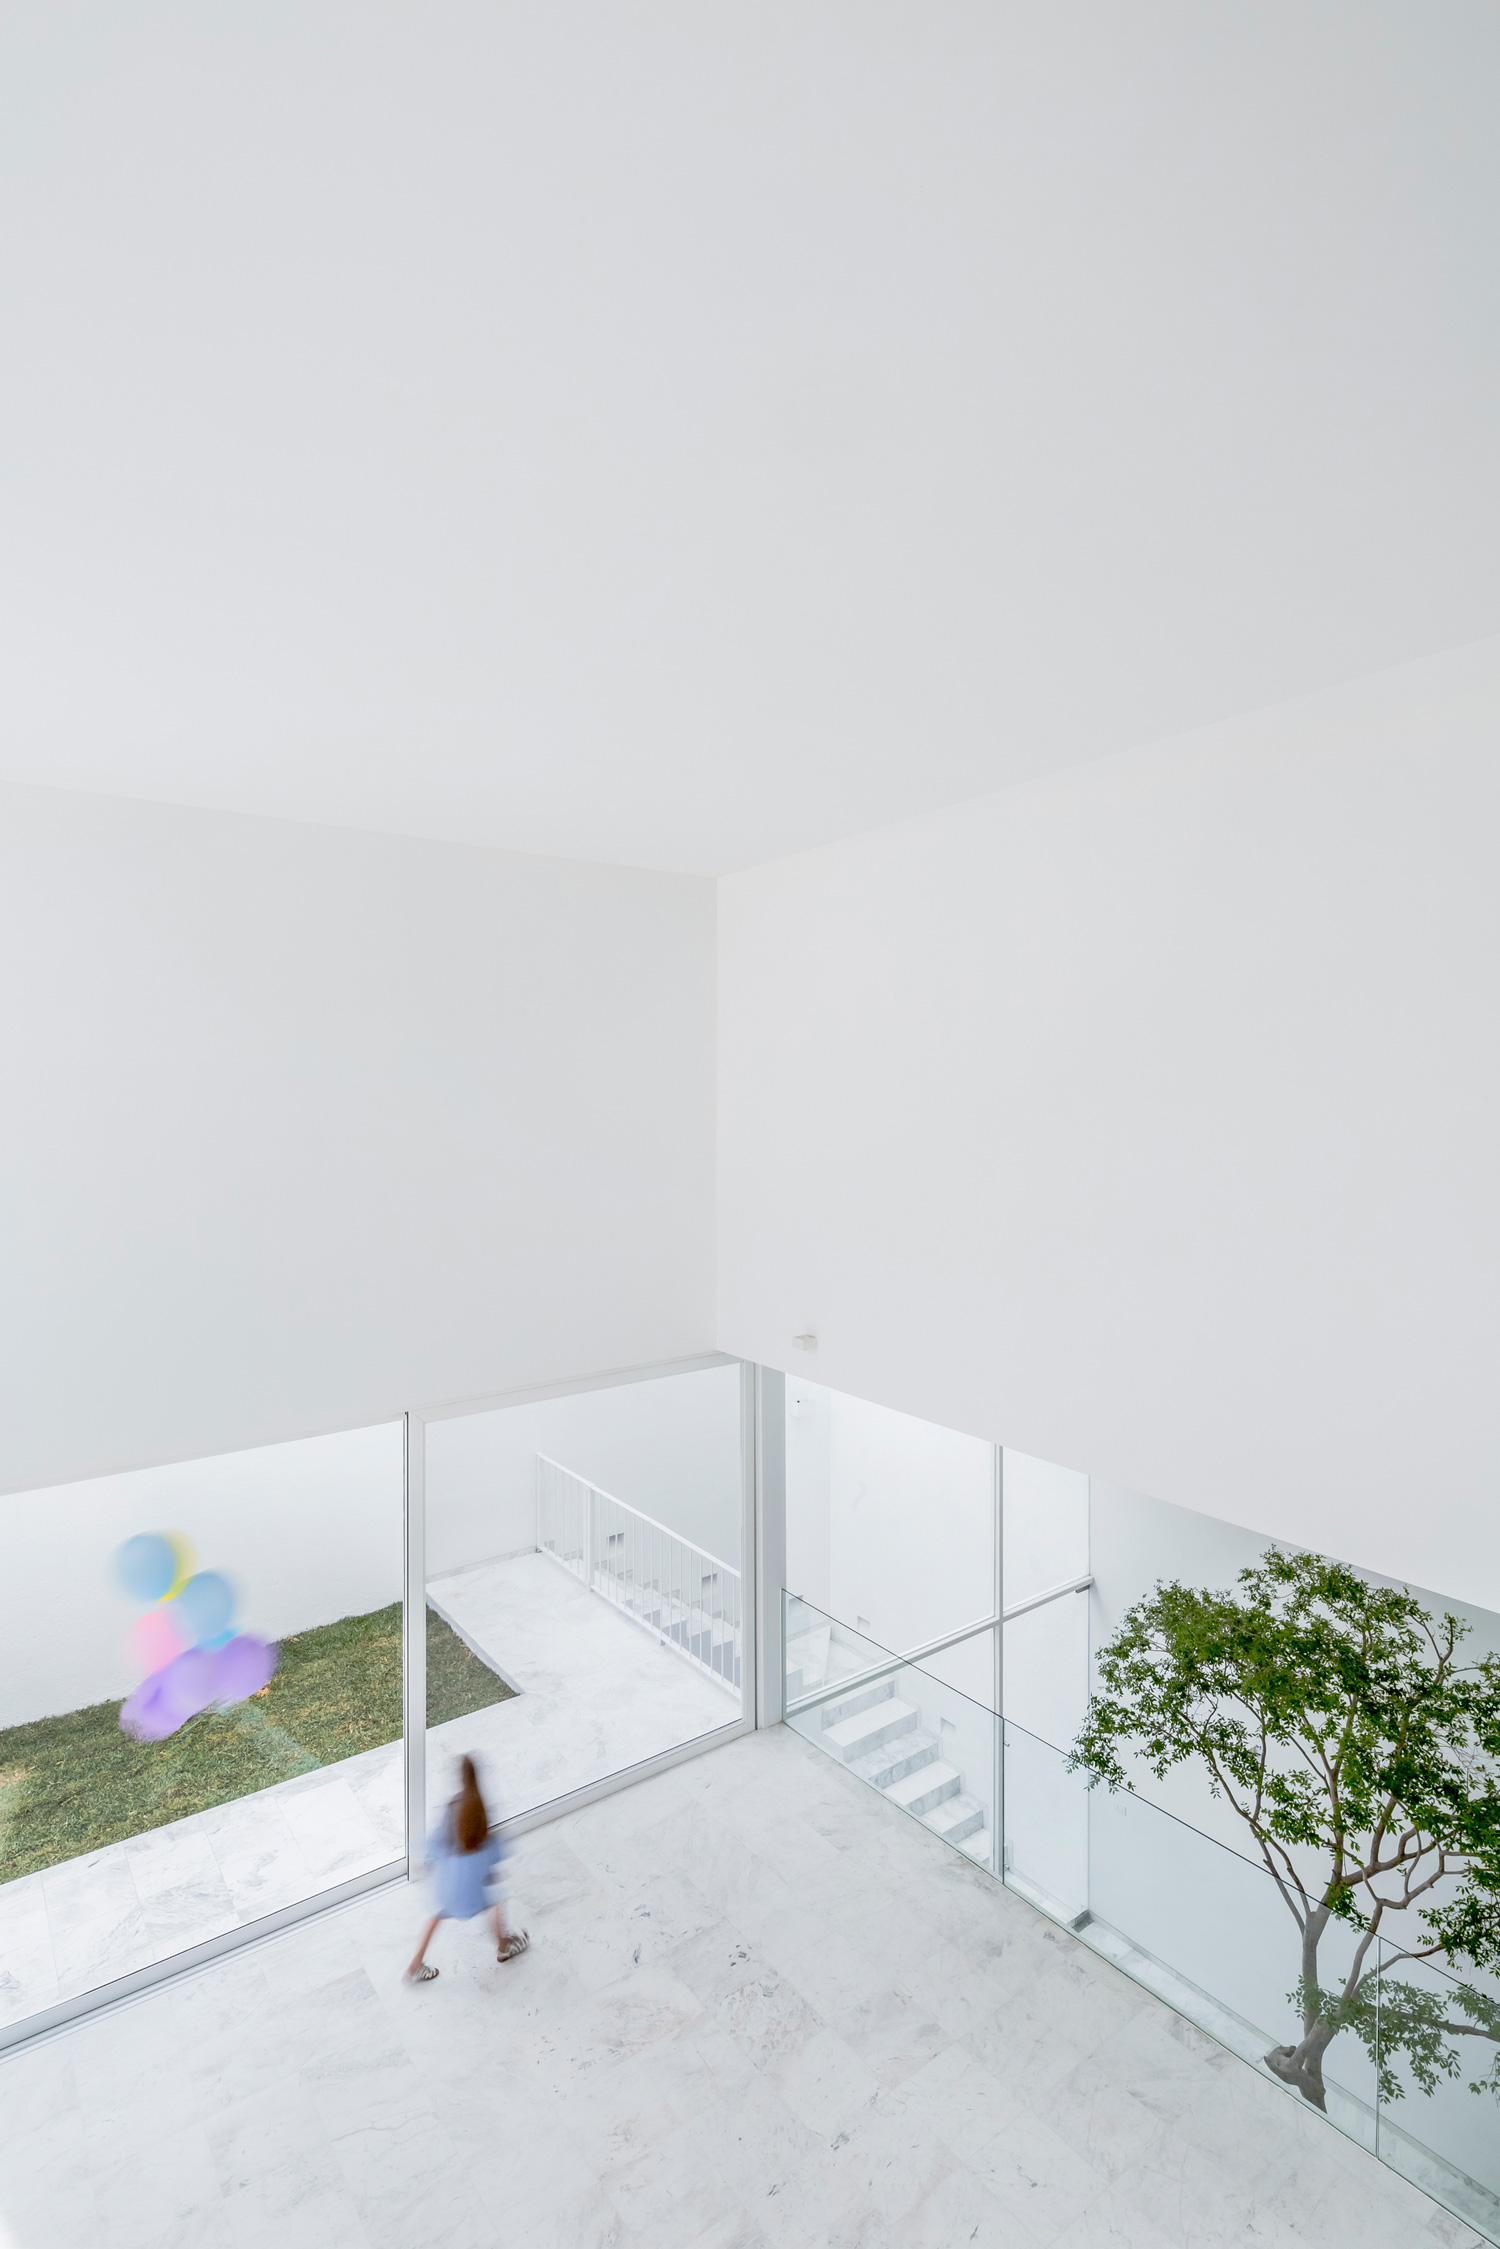 The Cave House in Mexico by Abraham Cota Paredes Arquitectos   Yellowtrace